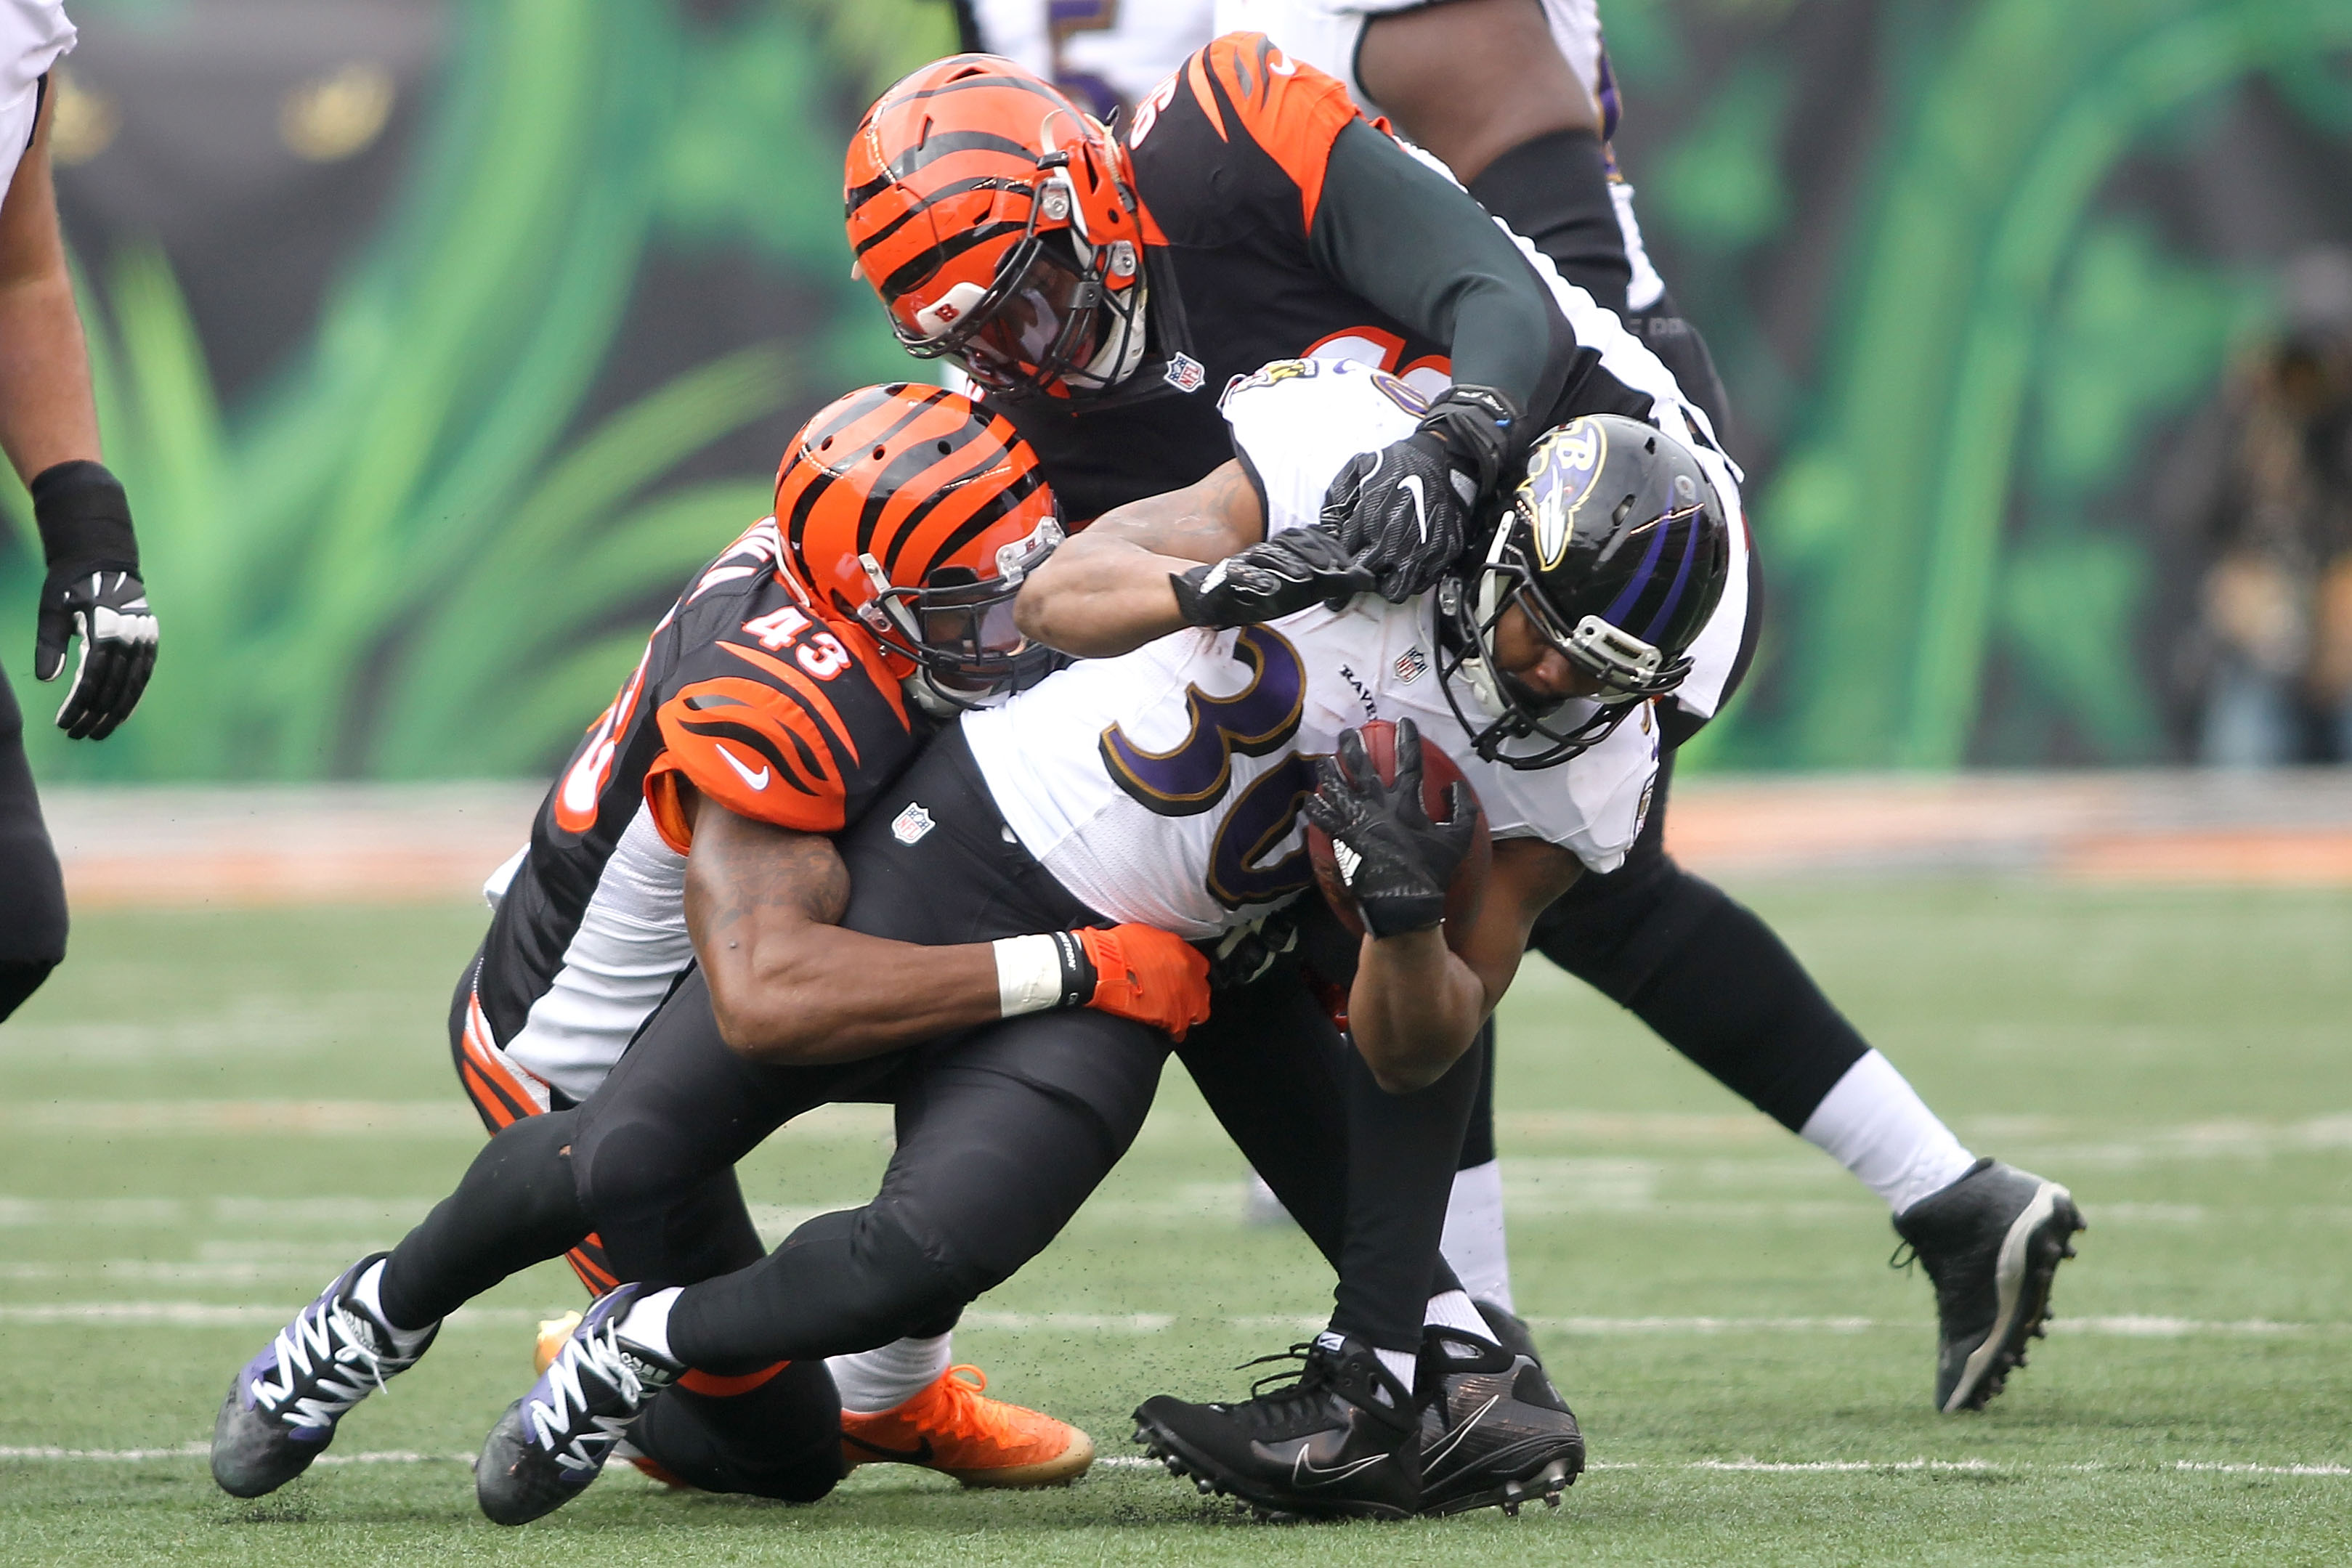 Baltimore Ravens RB Kenneth Dixon ruled out for season